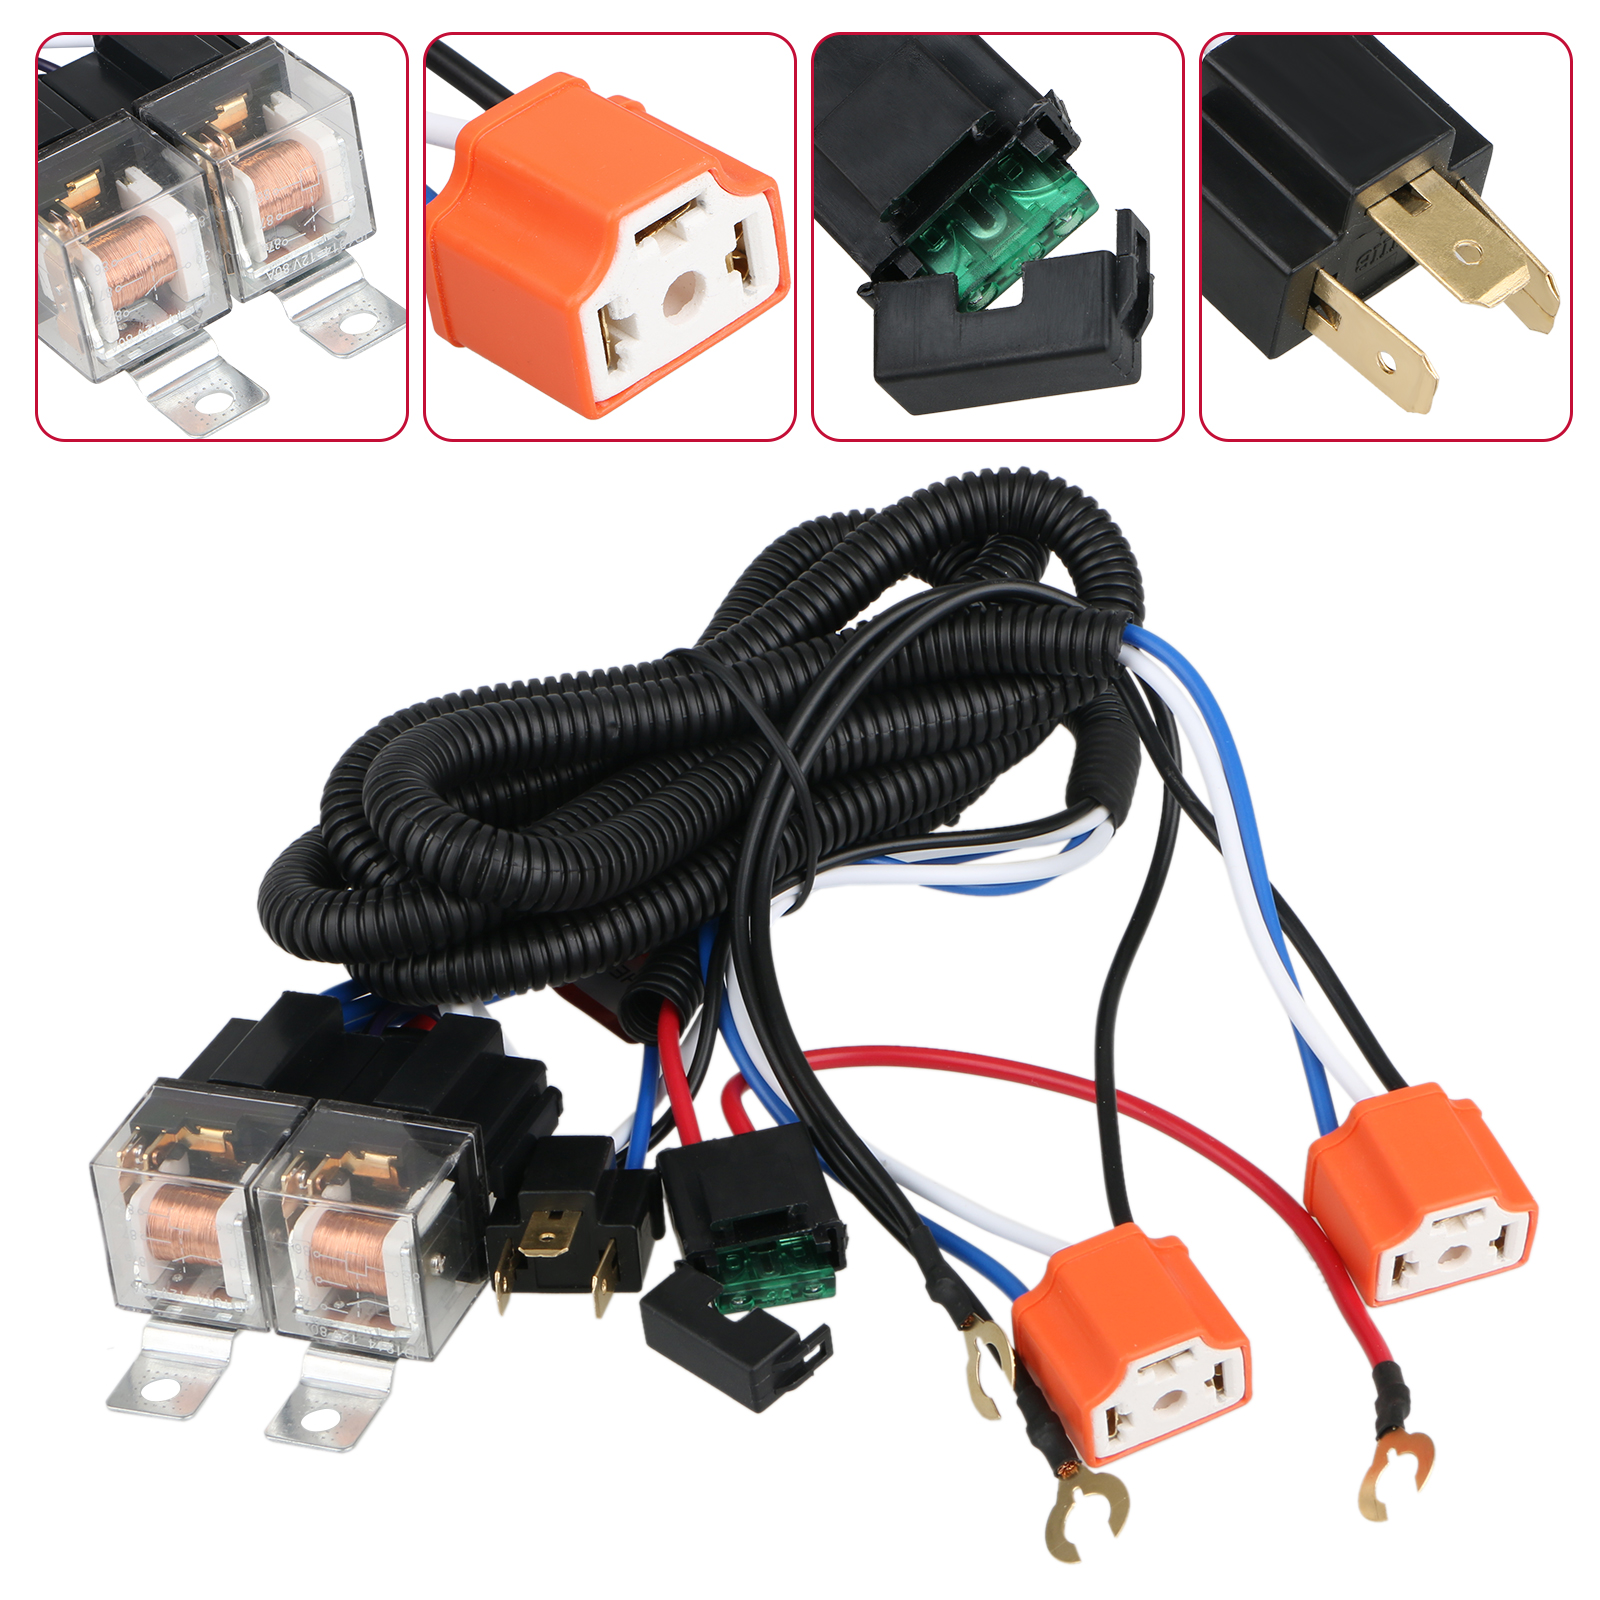 H4 Relay Wiring Harness H6054 H4 Socket Plugs, 9003 Headlamp Light on h2 wiring harness, c3 wiring harness, h13 wiring harness, h22 wiring harness, h1 wiring harness, drl wiring harness, ipf wiring harness, h3 wiring harness, s13 wiring harness, h15 wiring harness, b2 wiring harness, f1 wiring harness, t3 wiring harness, hr wiring harness, e2 wiring harness, g9 wiring harness, h8 wiring harness, h7 wiring harness, h11 wiring harness,